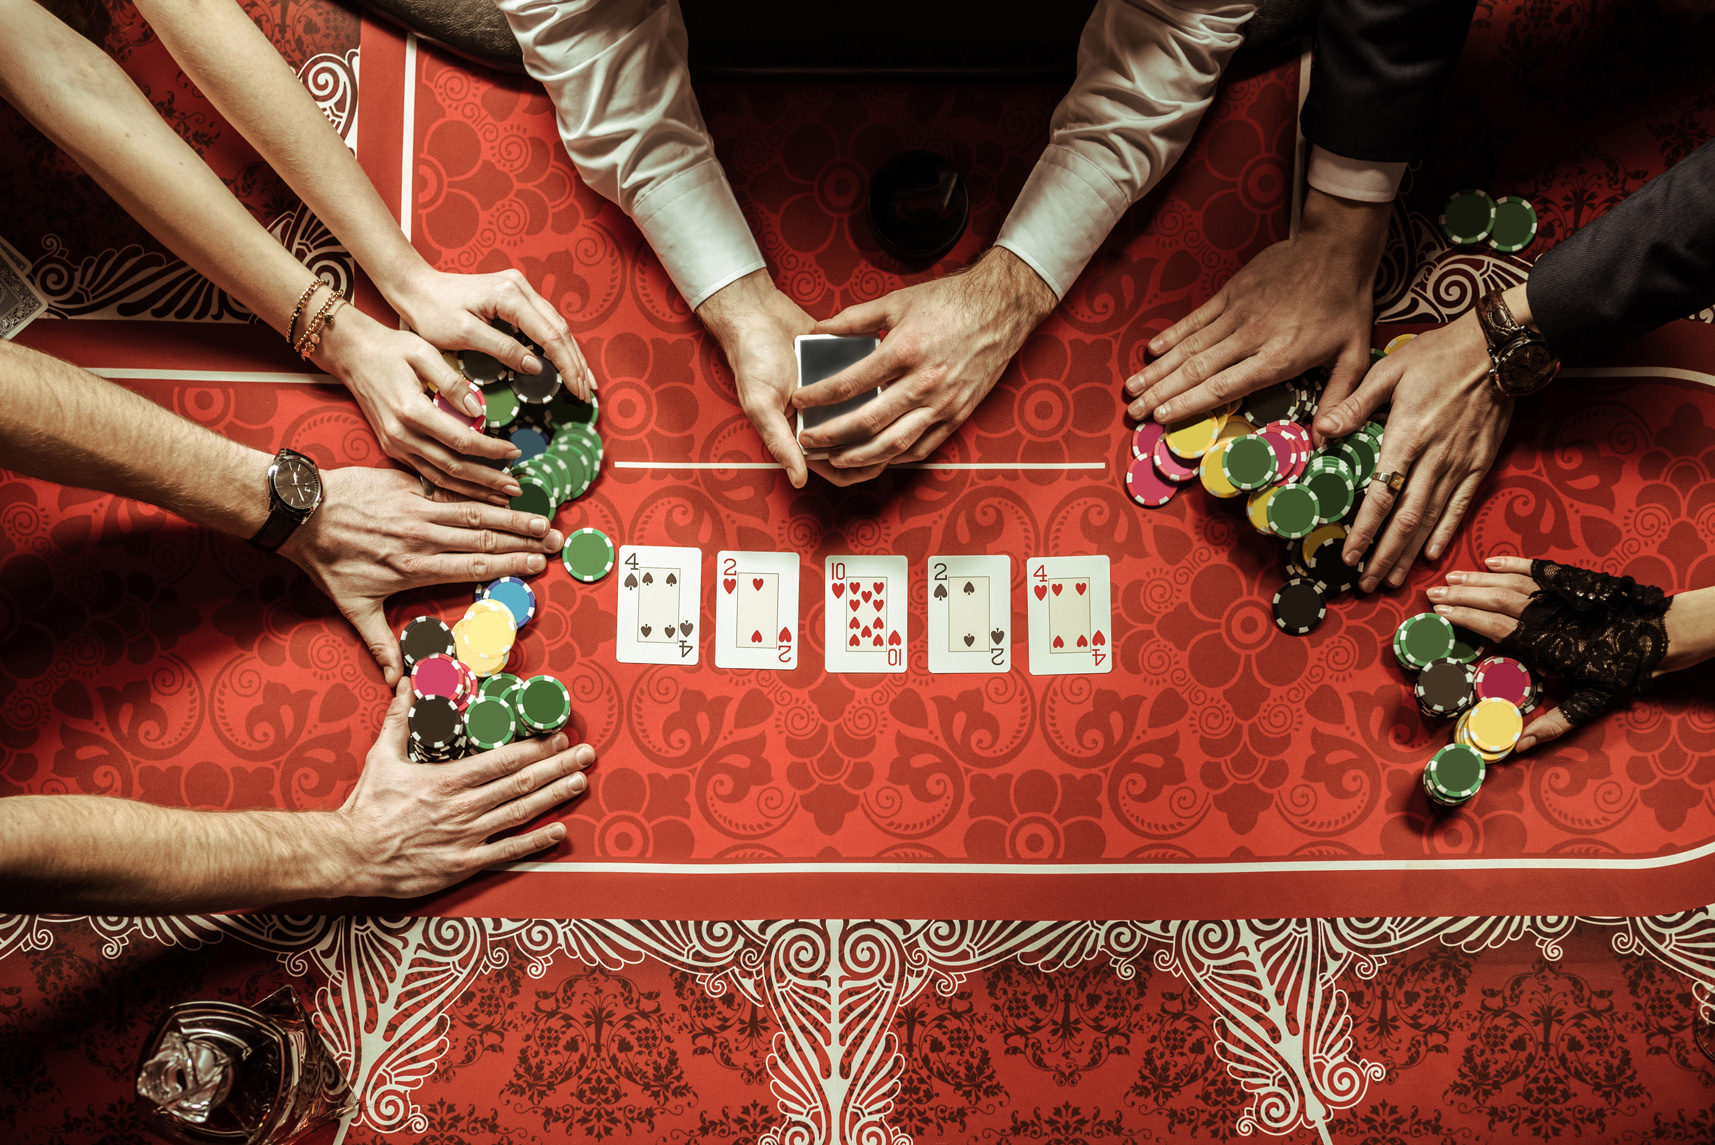 All You Need to Know About Poker: Sequence of Poker Hands and More